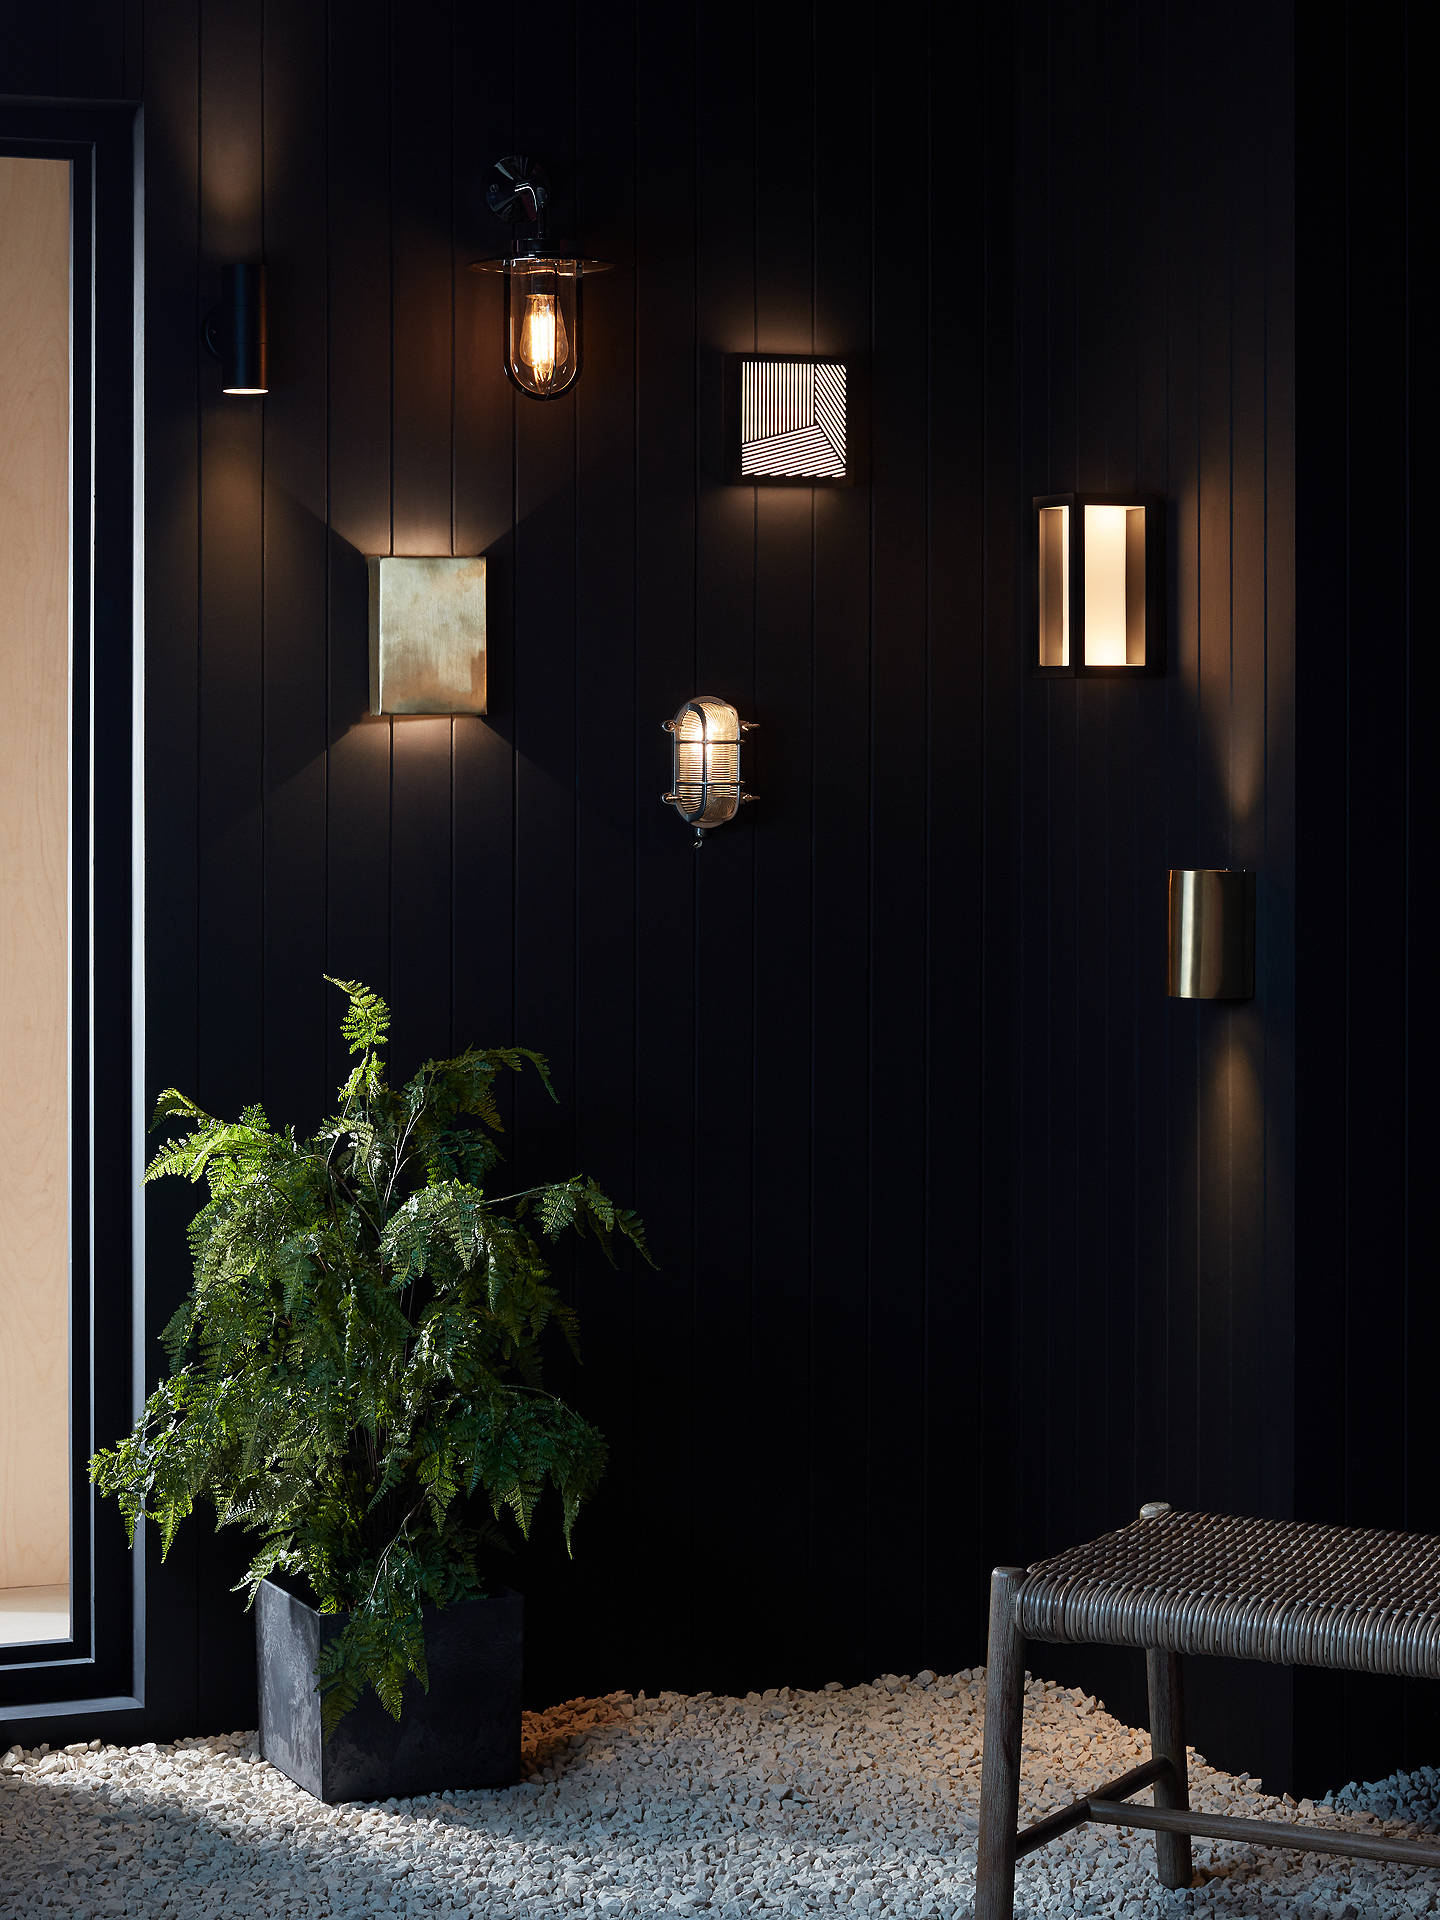 Buy John Lewis & Partners Olbia LED Outdoor Wall Light, Charcoal Online at johnlewis.com